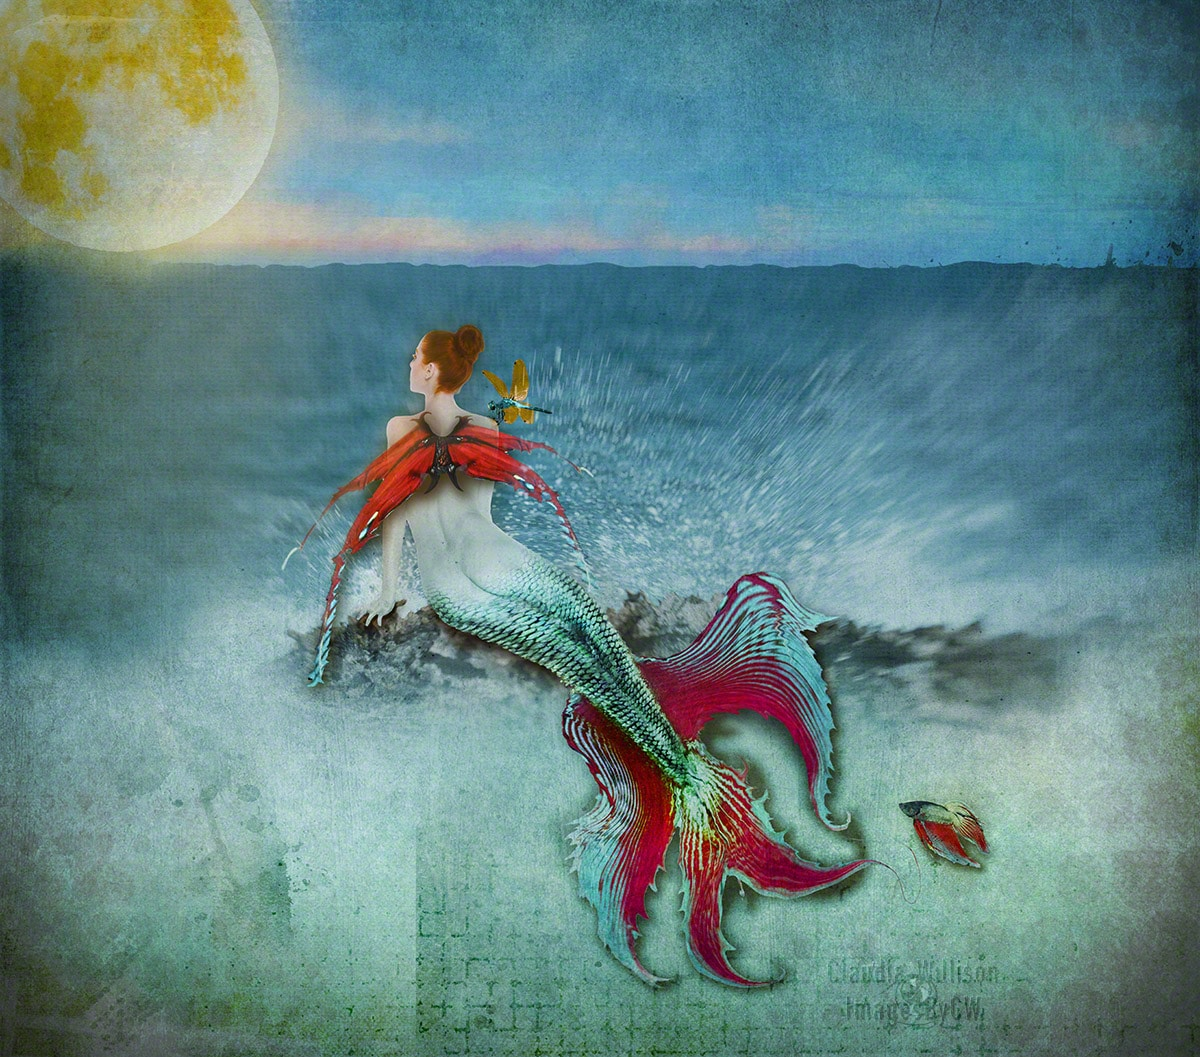 mermaid, composite, photoshop